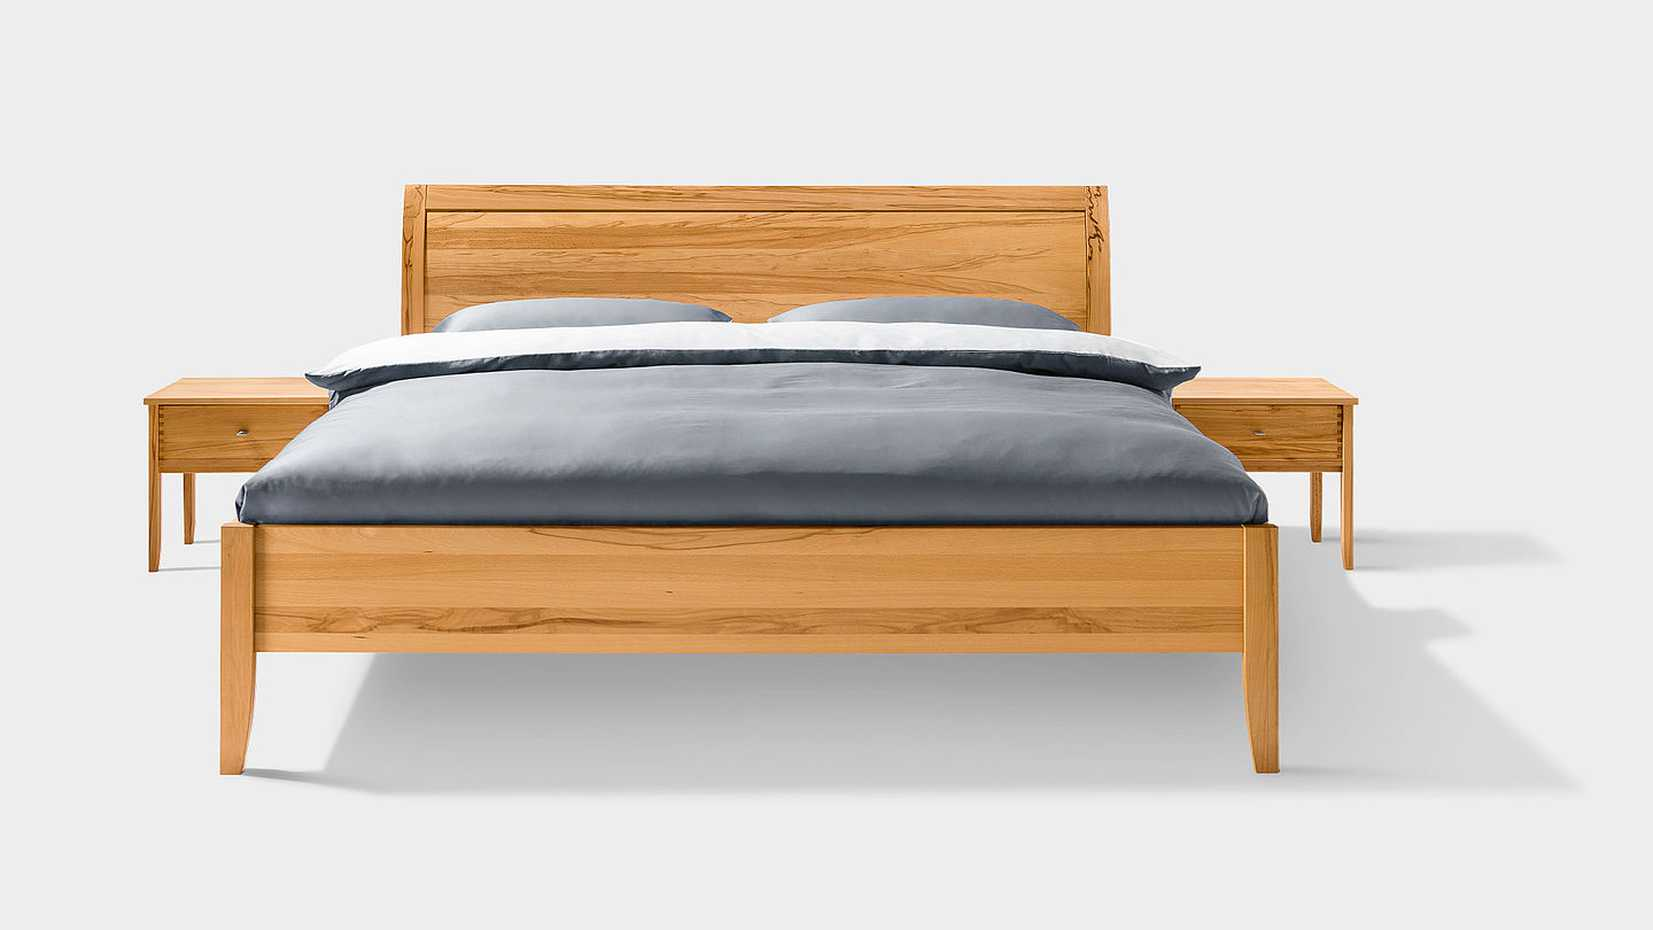 Sesam Bed by Team 7 product image 3